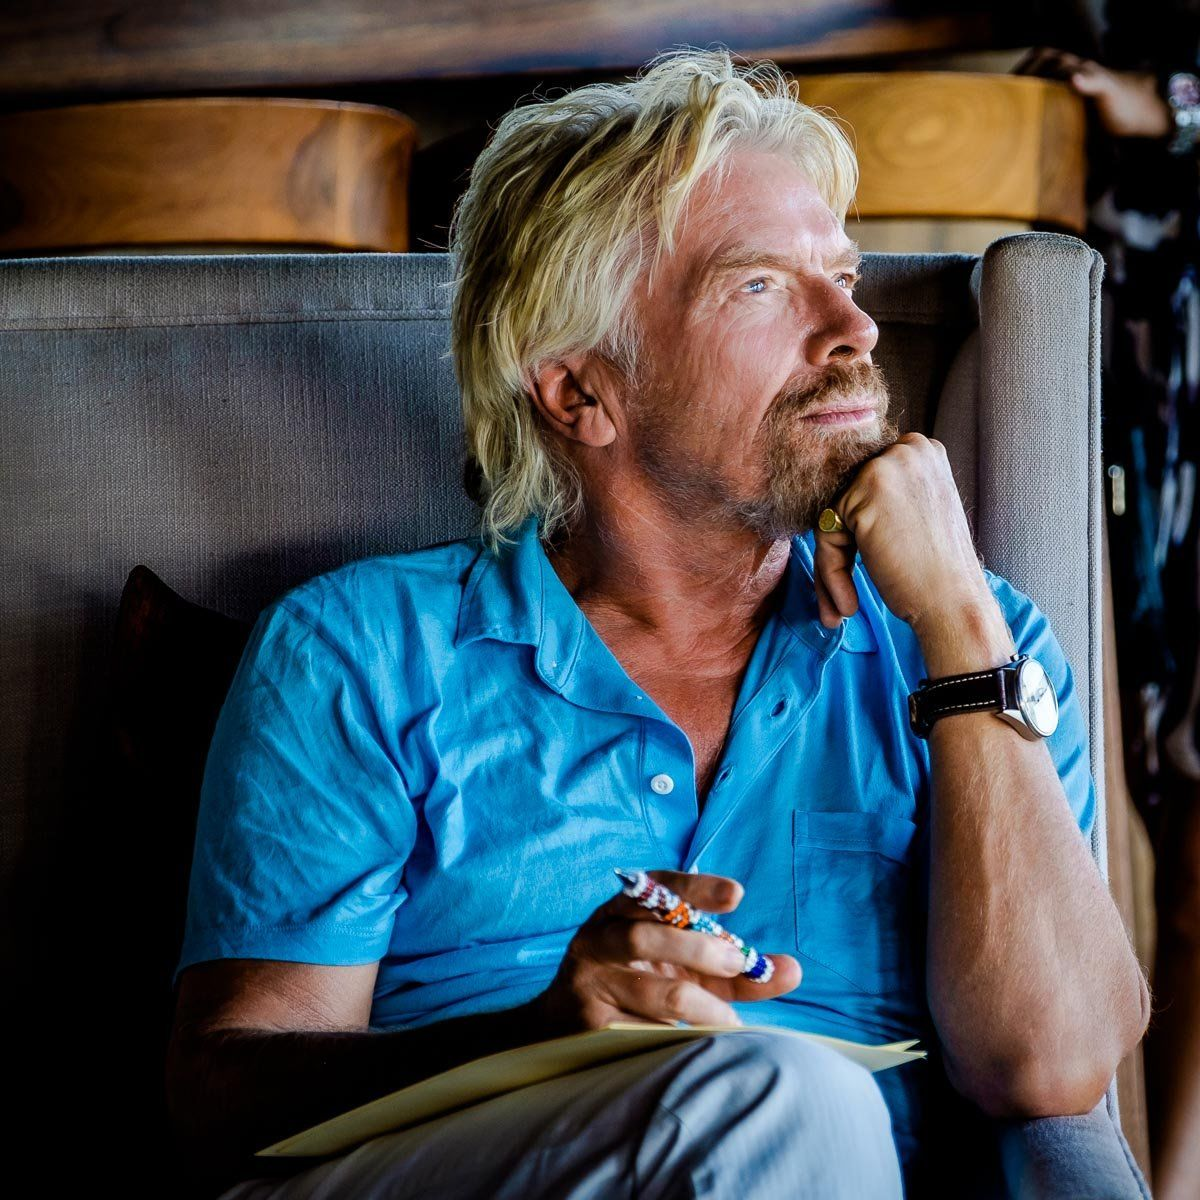 Richard Branson's 10 step guide to actionable lists